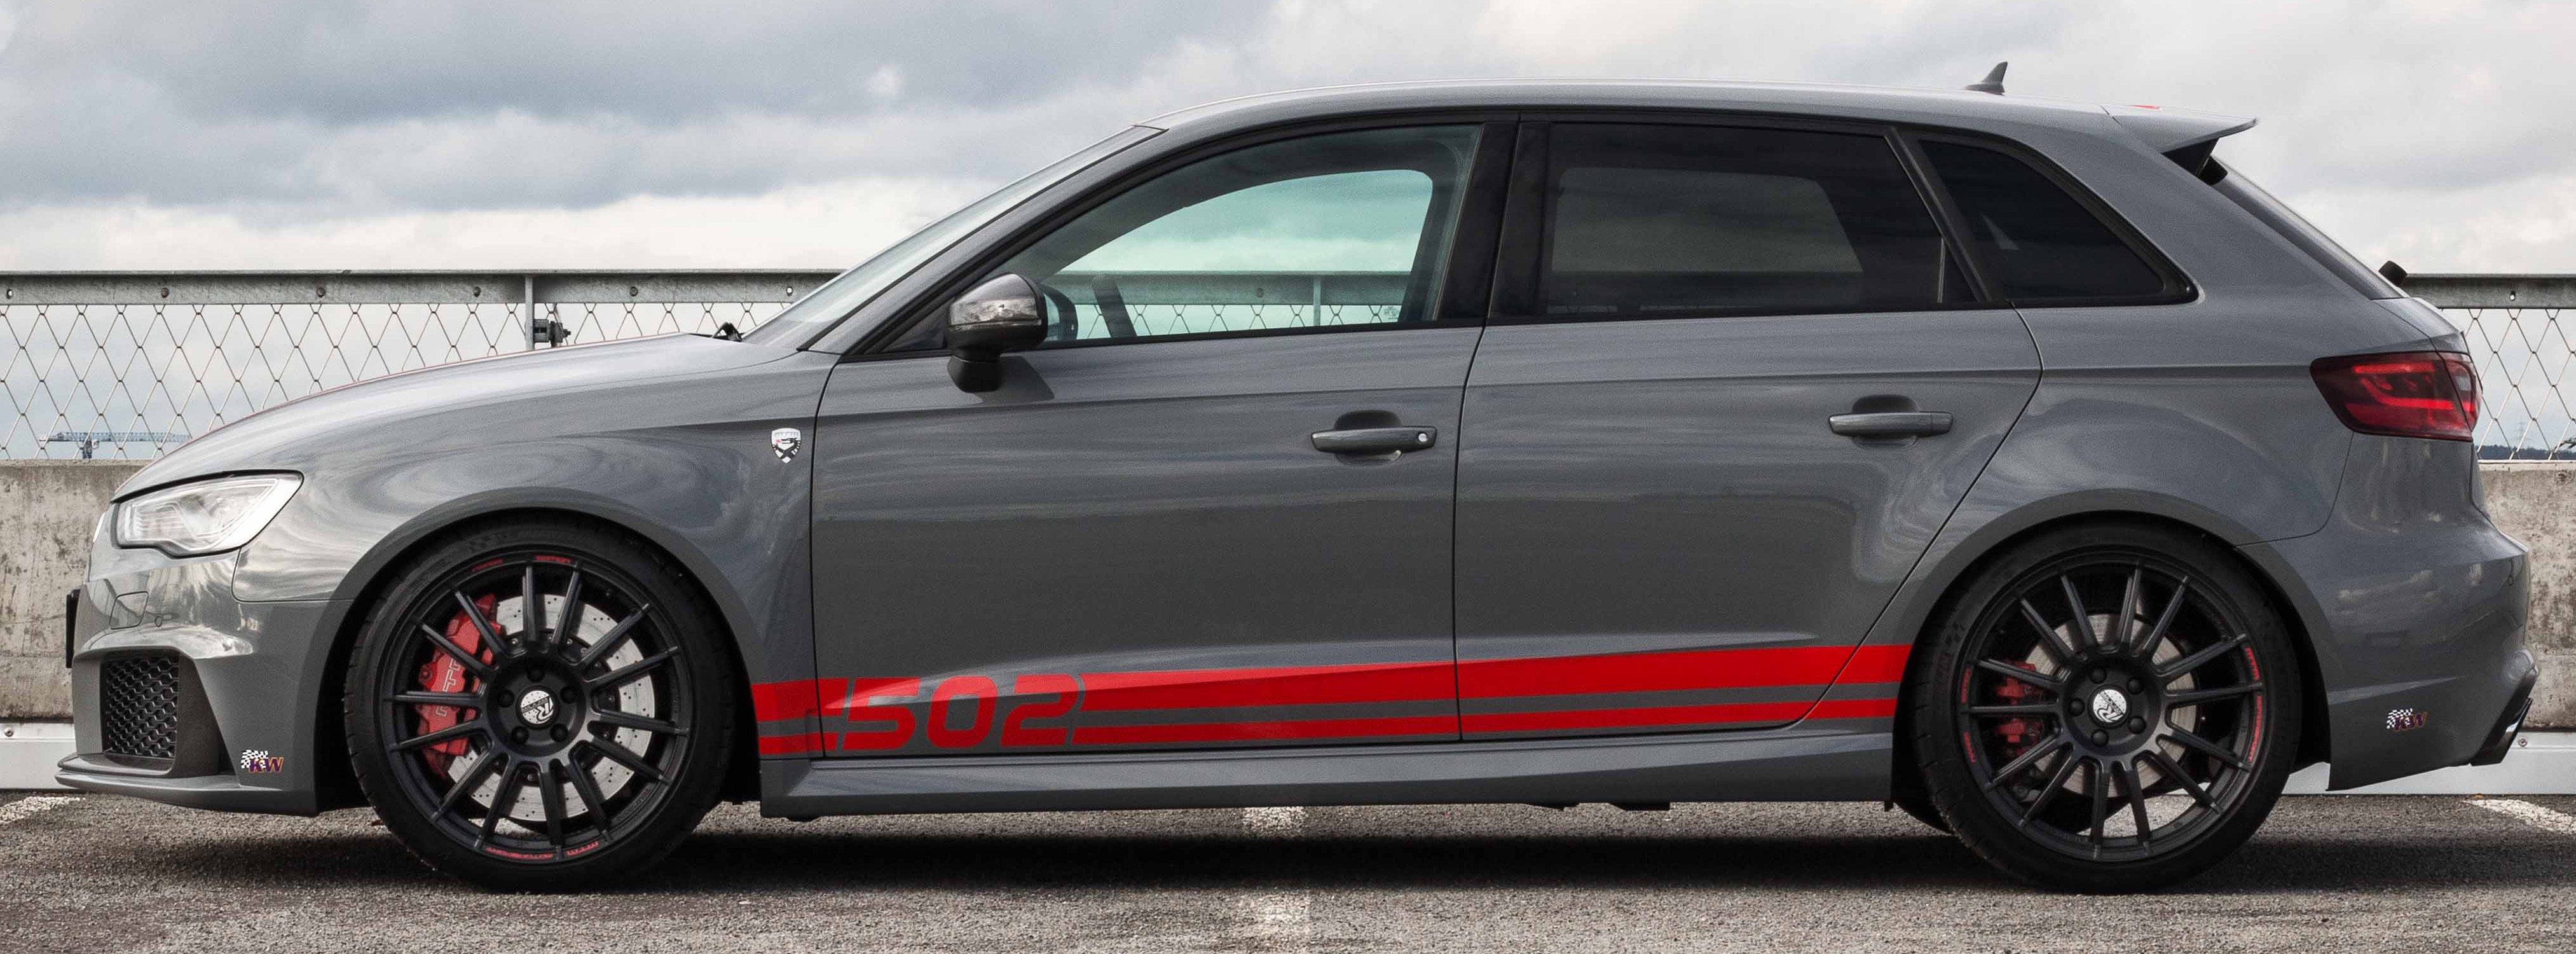 Audi_rs3r_tuning_carwrapping